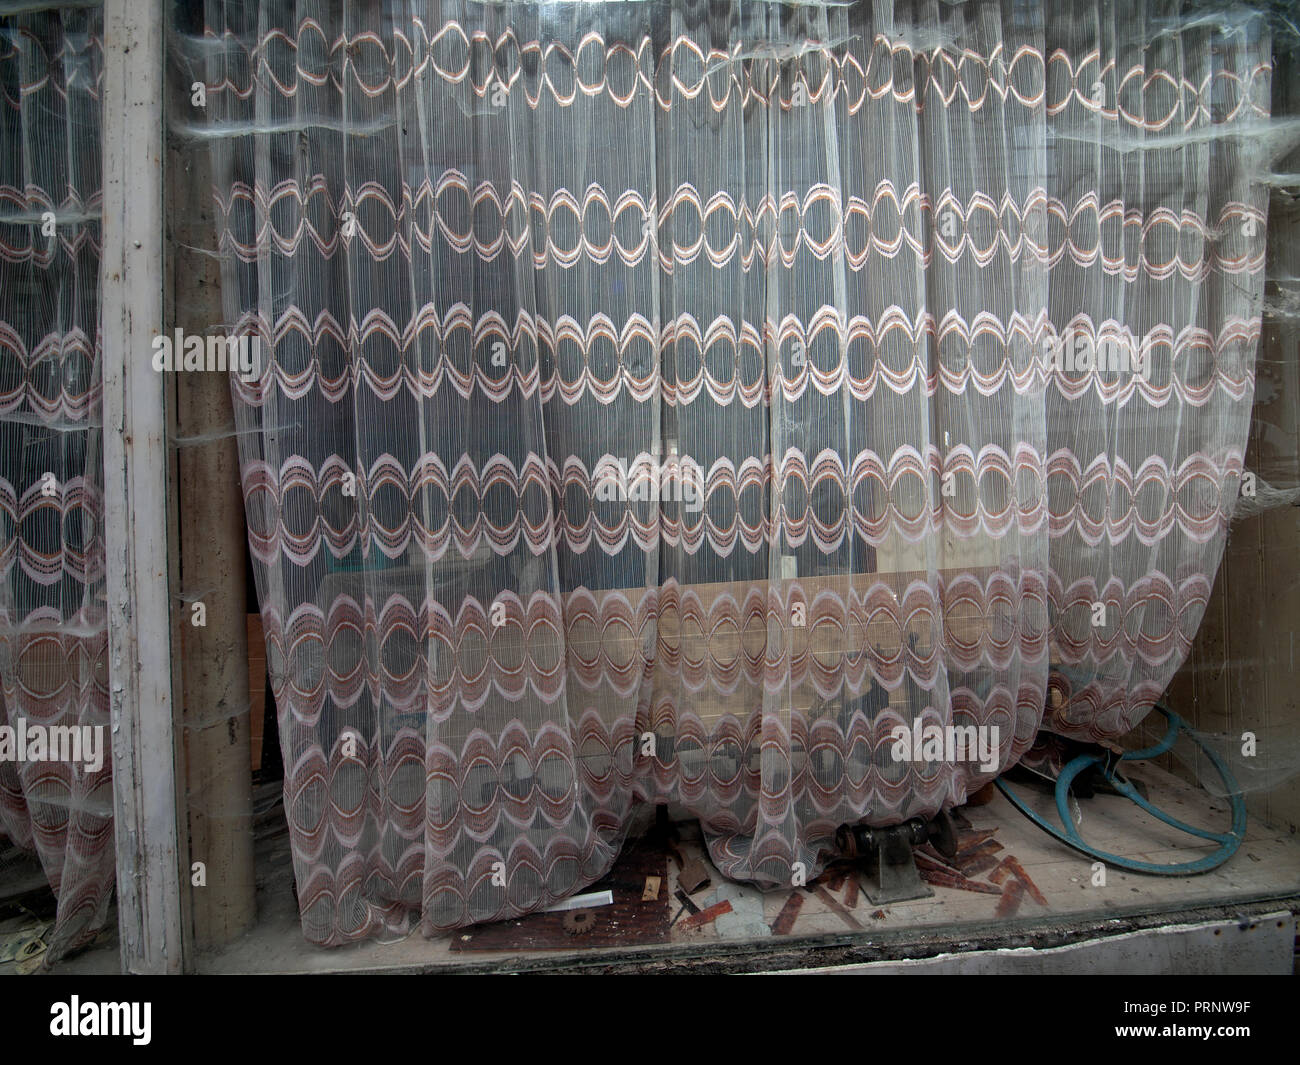 Net curtains in a run down French shop window - Stock Image